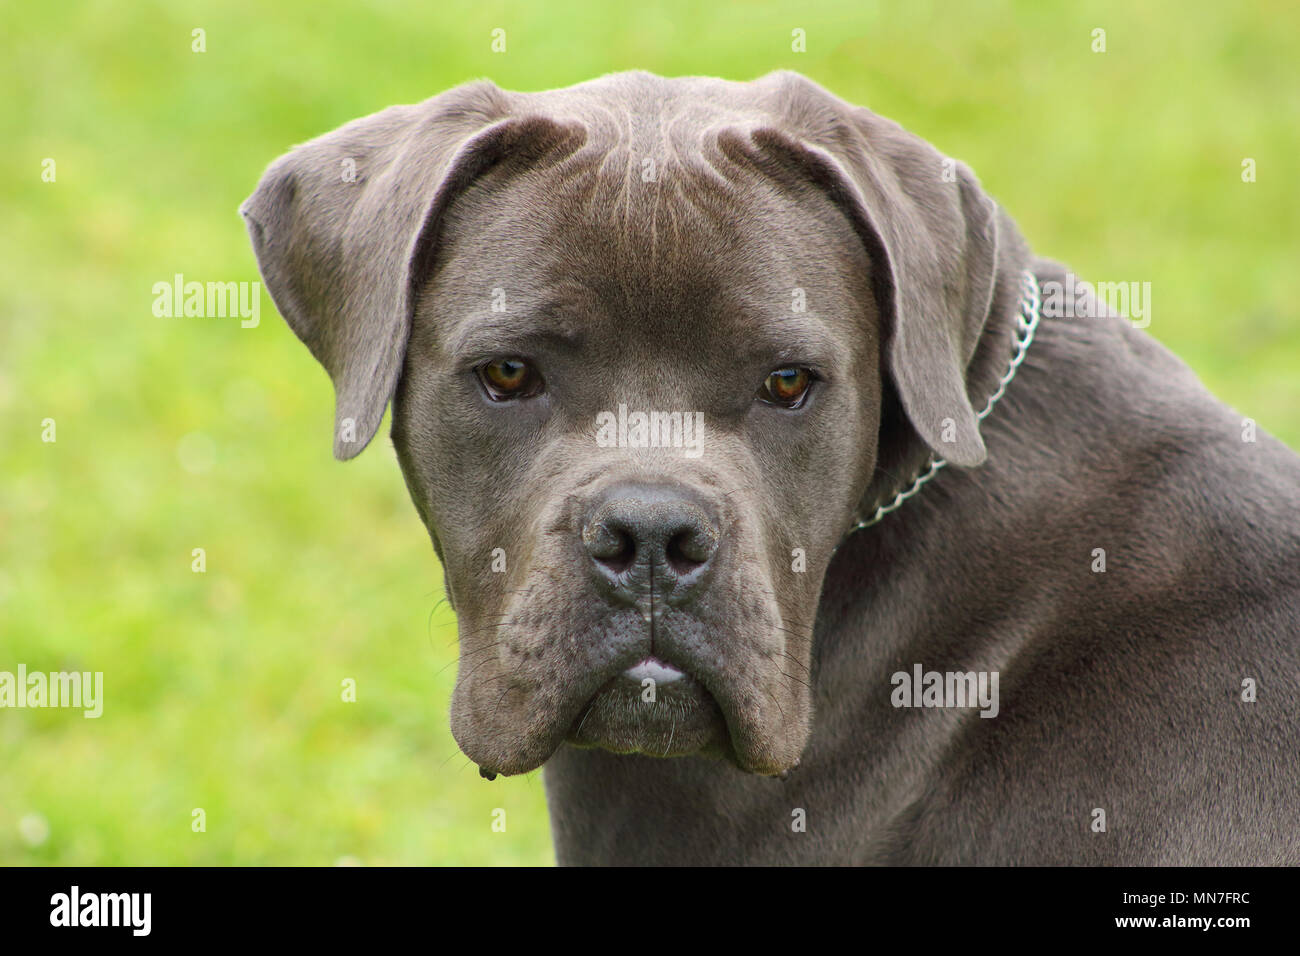 Face Of A Young Blue Cane Corso Dog With Tender Eyes Stock Photo